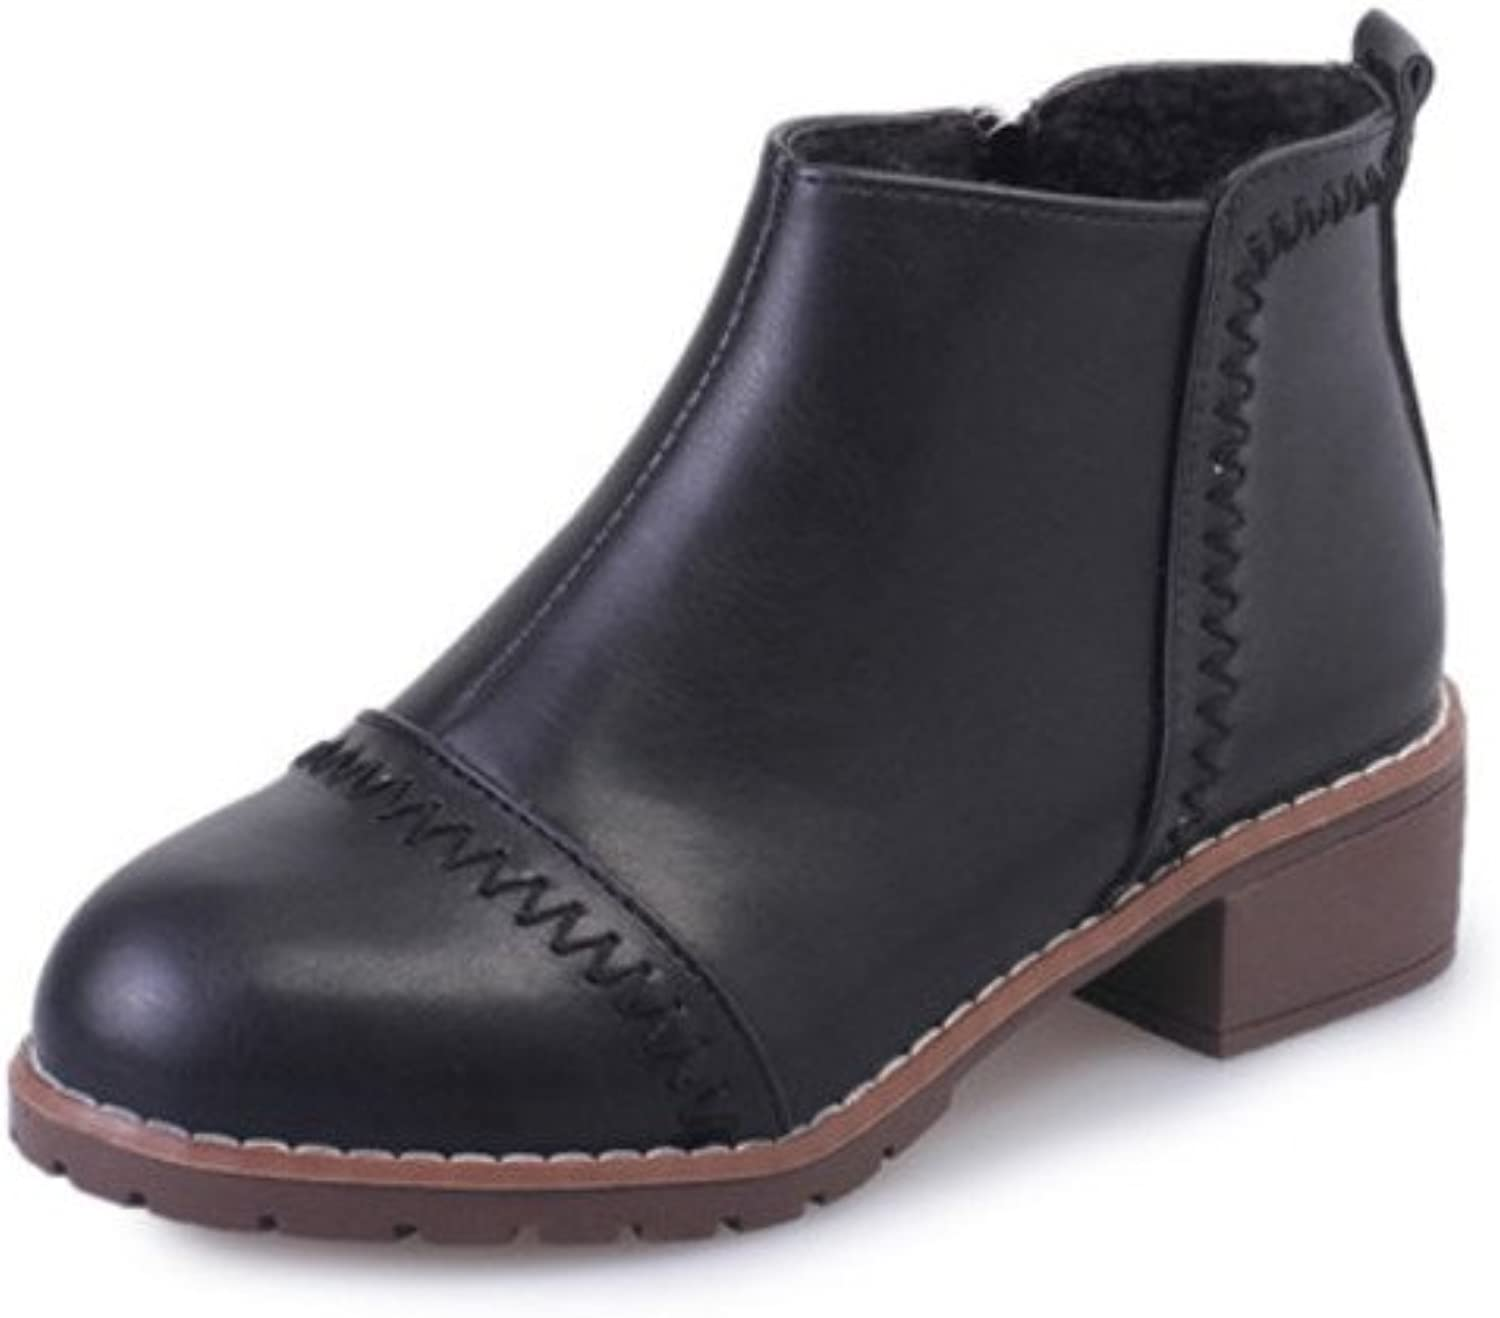 Huhuj Chelsea boots Autumn winter short boots Joker Martin boots with flat Wind of England student vintage nude boots winter women shoes